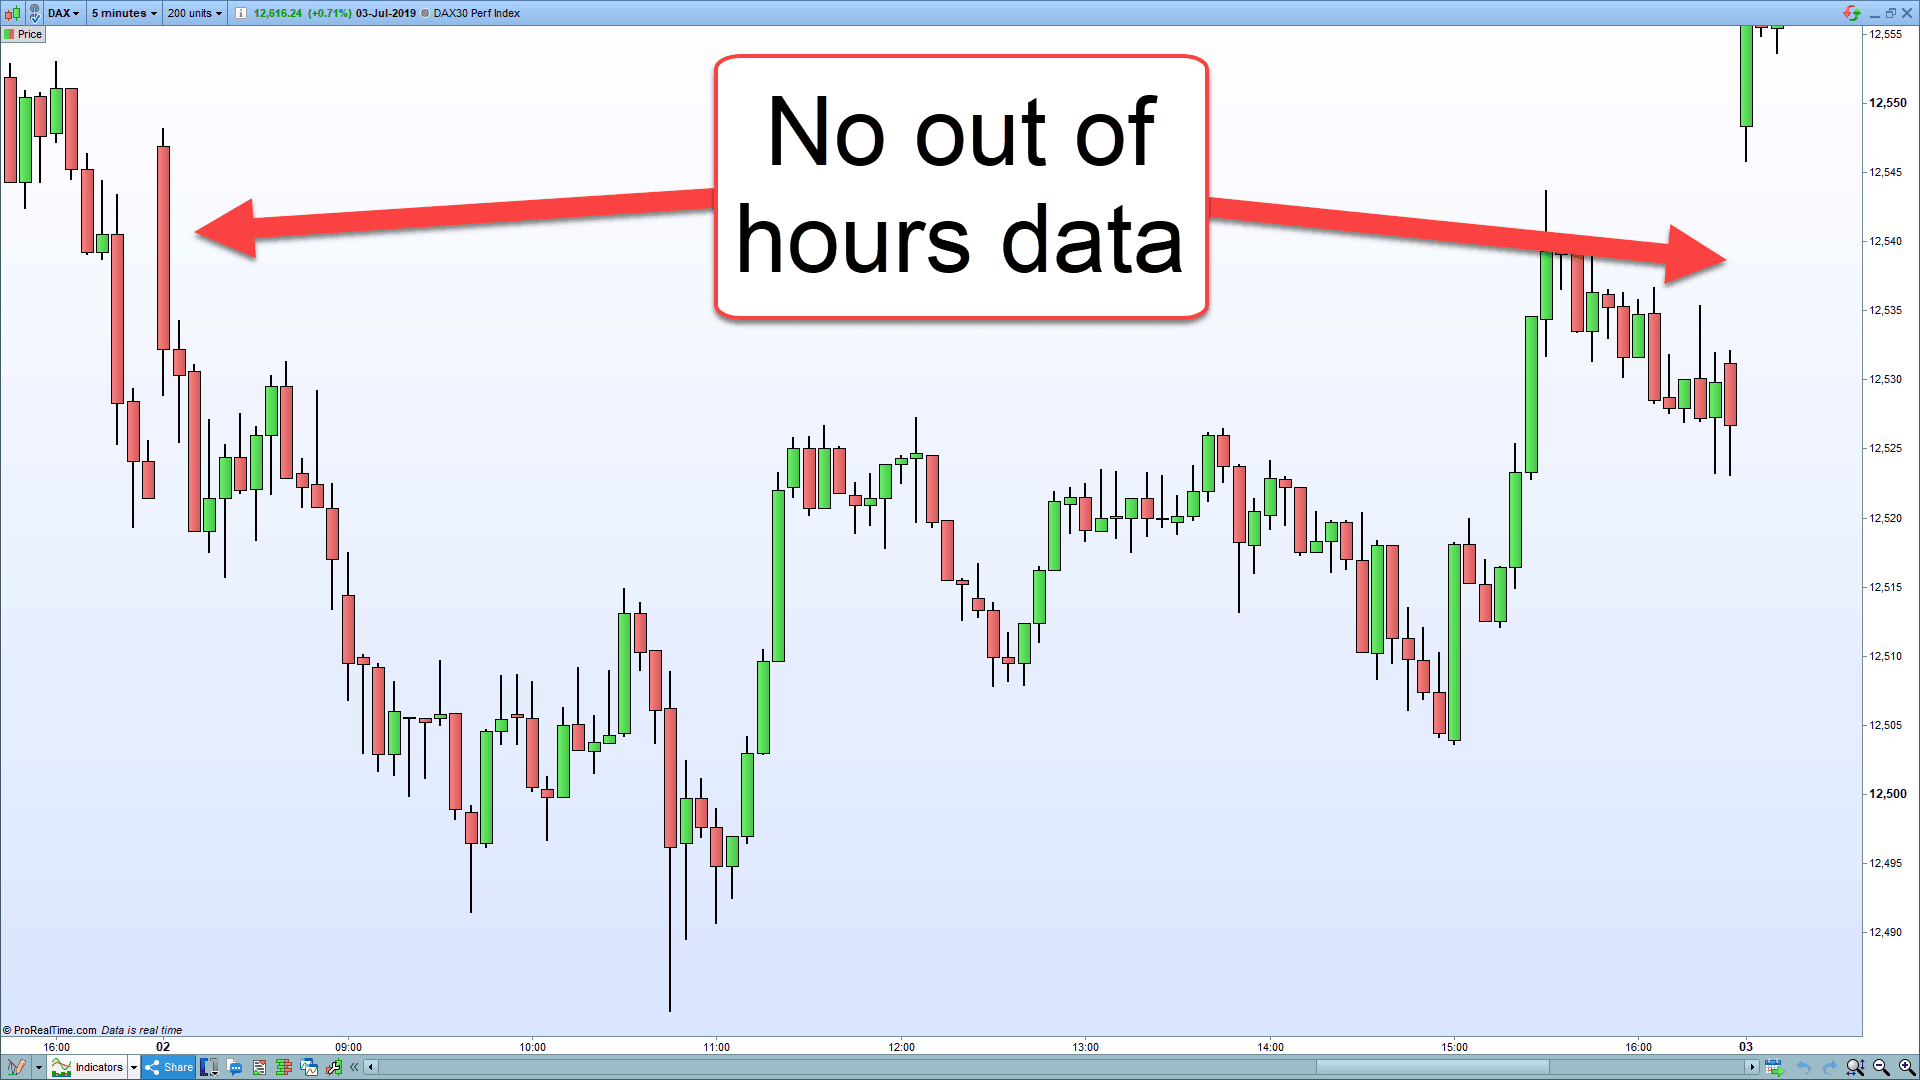 A chart showing the DAX cutting off trading hours.